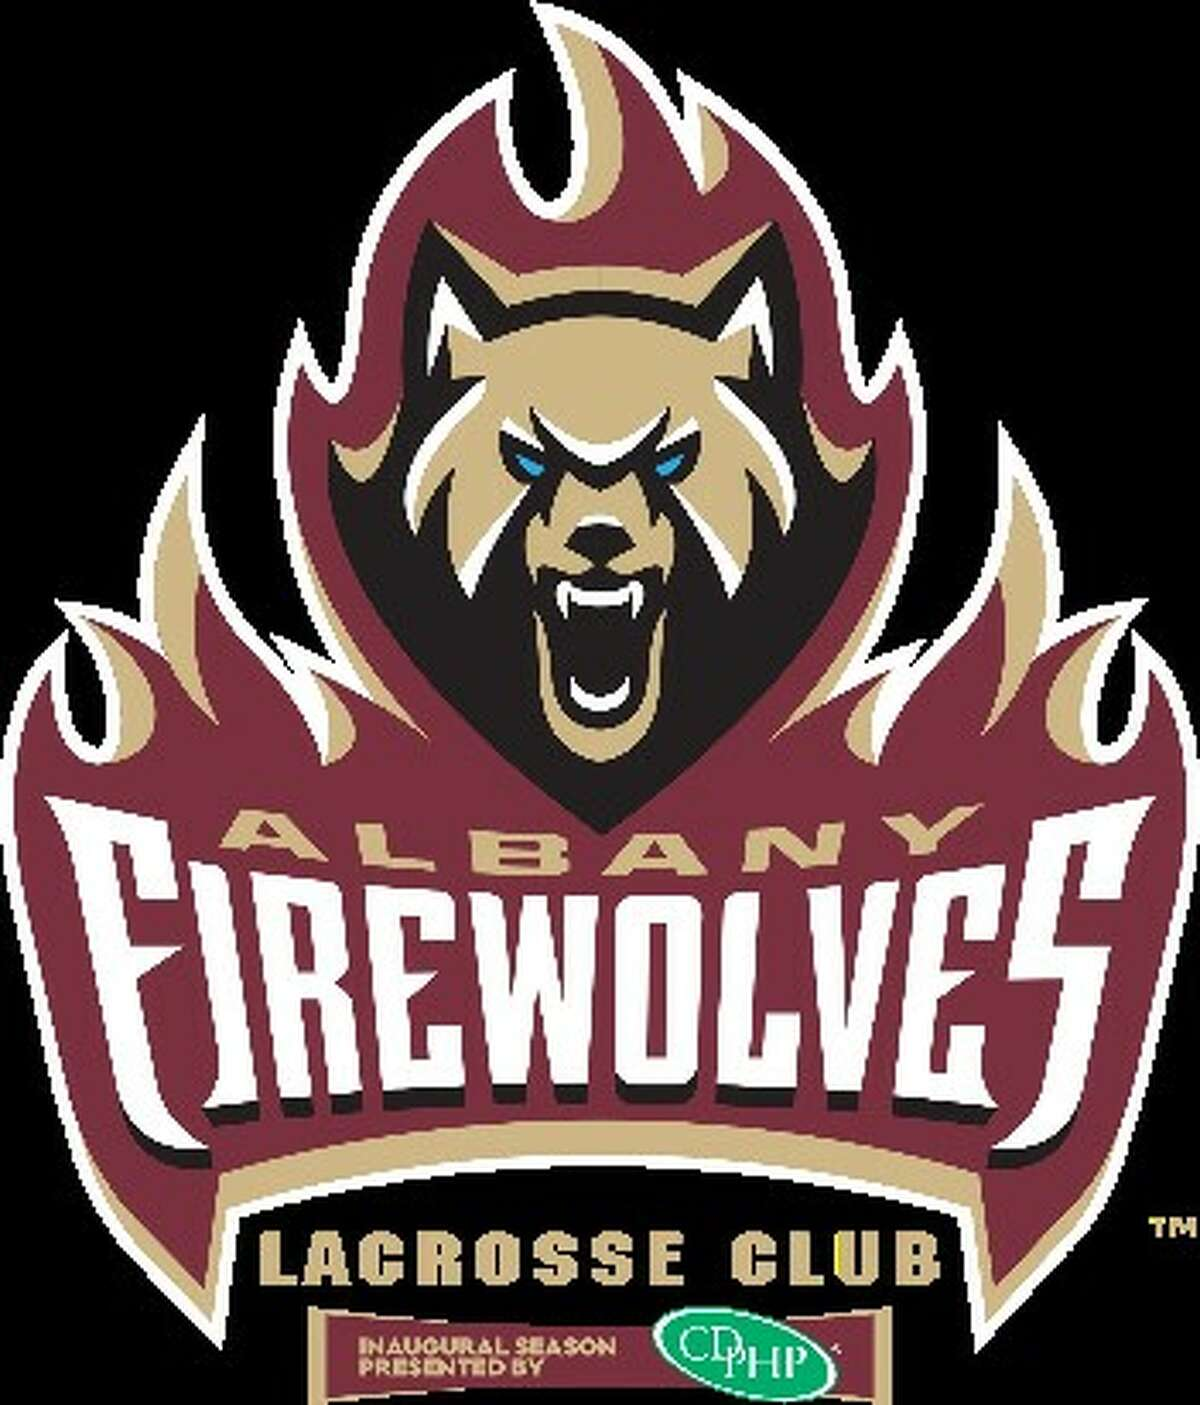 The Albany Firewolves of the National Lacrosse League will play their inaugural home opener on Saturday, Dec. 18, 2021 at Times Union Center, the franchise announced. (Albany FireWolves)